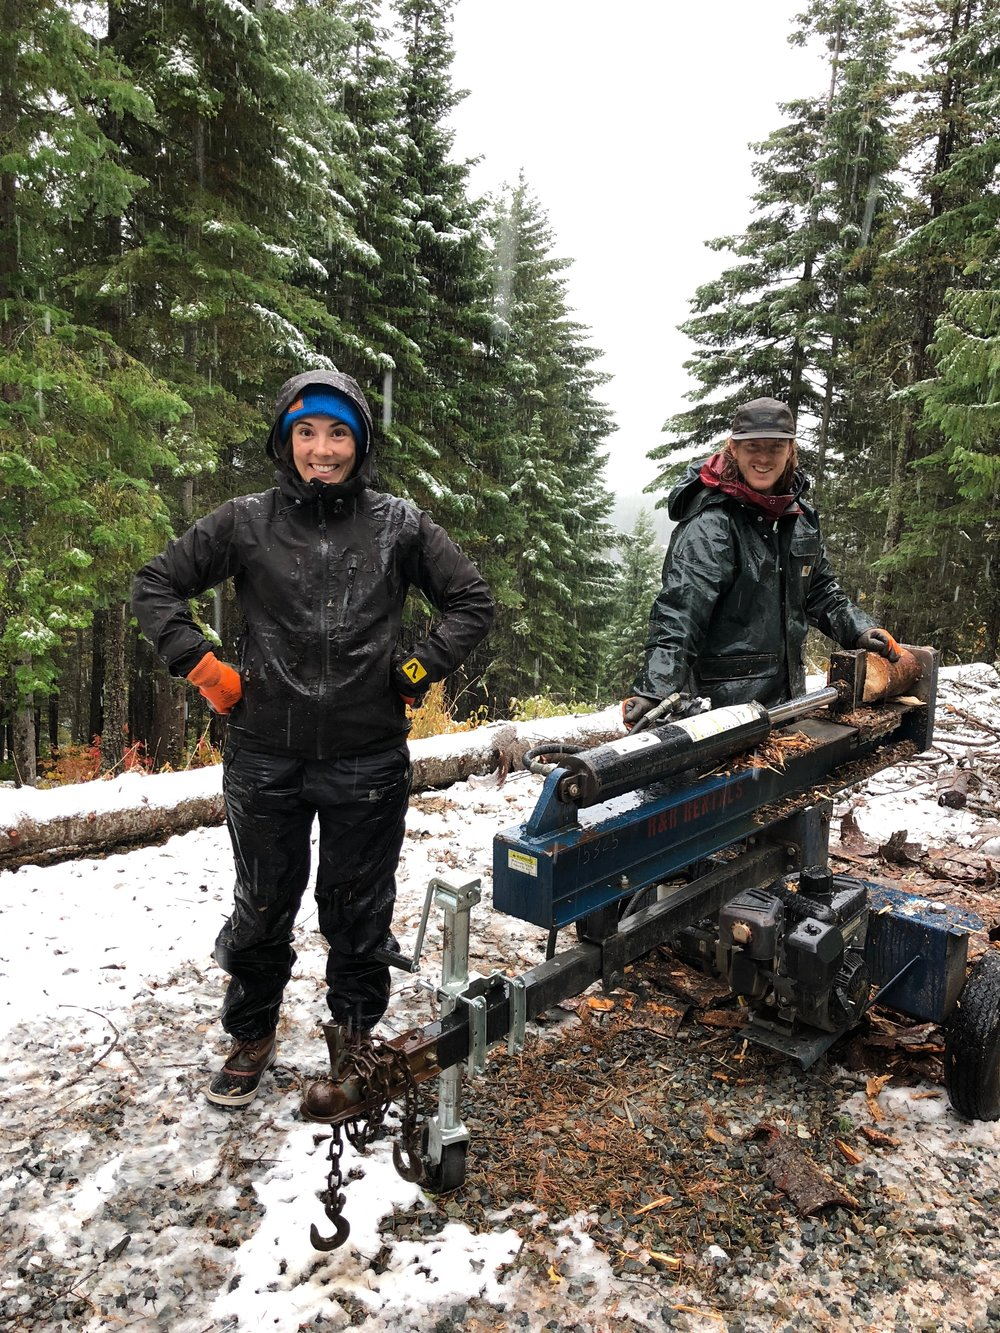 Who knew splitting wood in 32 degree slush could be so much fun!